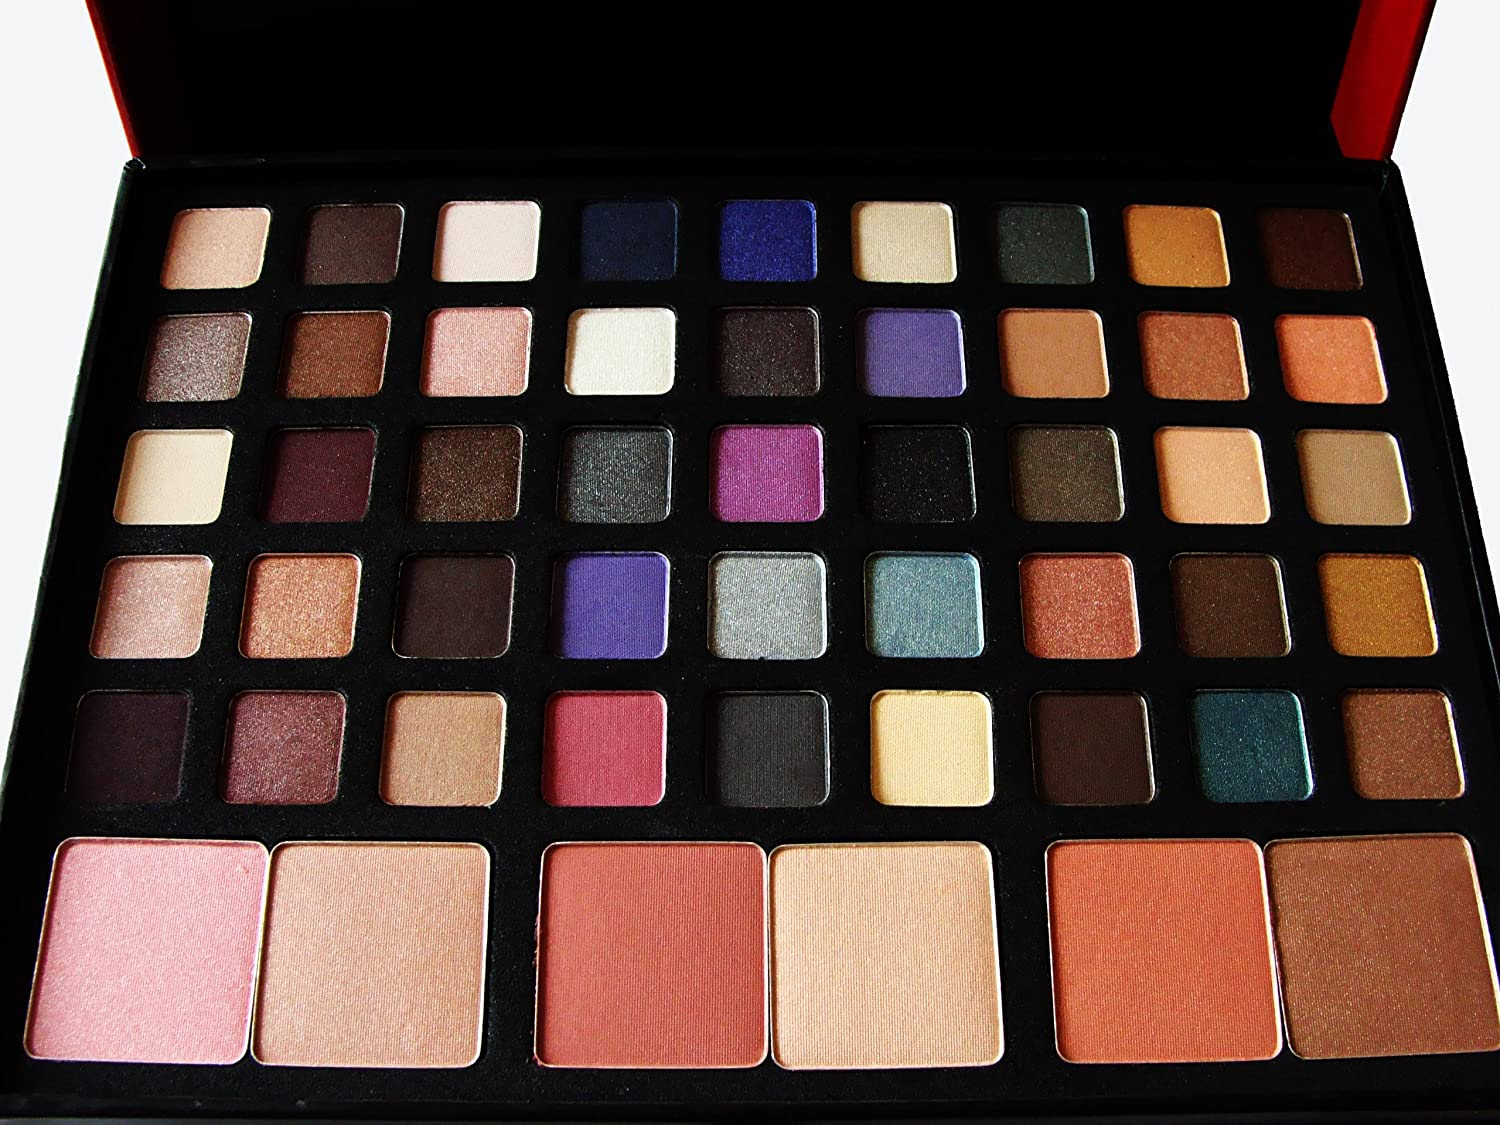 2014 Makeup Gift Guide - Smashbox Ultimate Palate